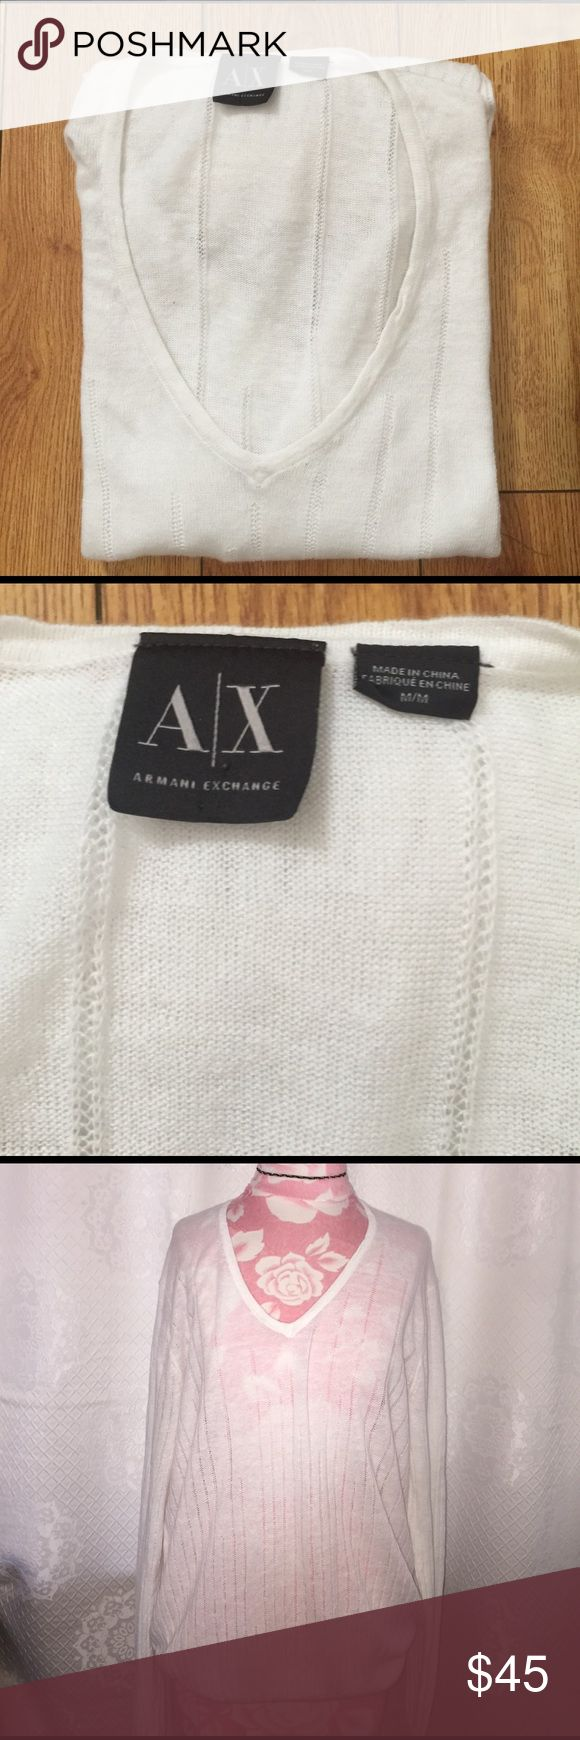 Armani Exchange White V neck long sleeve top M Armani Exchange long sleeve v neck white sweater/top M. Light fabric, will look great with jeans and your favorite heels. Perfect spring/summer top, lightly knit style. No stains, rips or holes. BUNDLE & SAVE 15% ❌ TRADES ❌ • 1131417 • A/X Armani Exchange Tops Sweatshirts & Hoodies